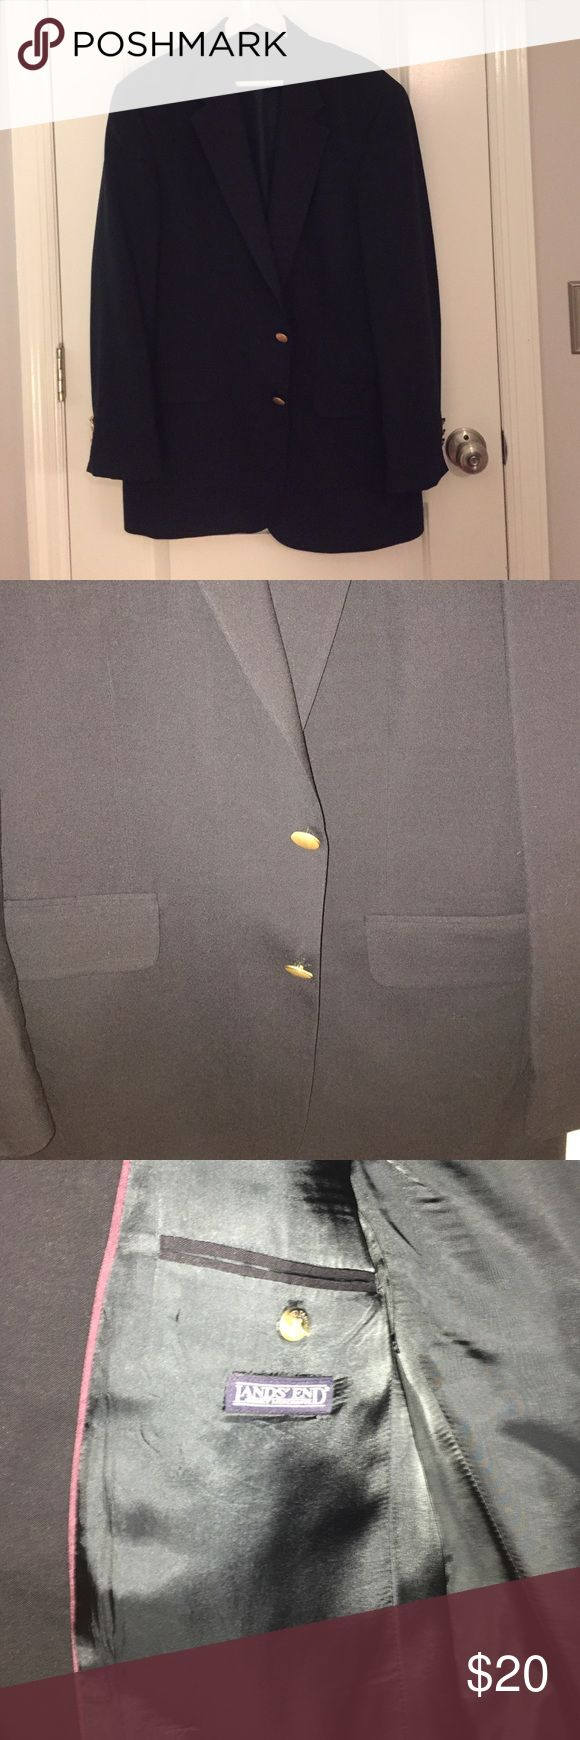 Men's Lands End Sports coat Black sports jacket with gold buttons and shoulder pads. Very good condition. Lands' End Suits & Blazers Sport Coats & Blazers